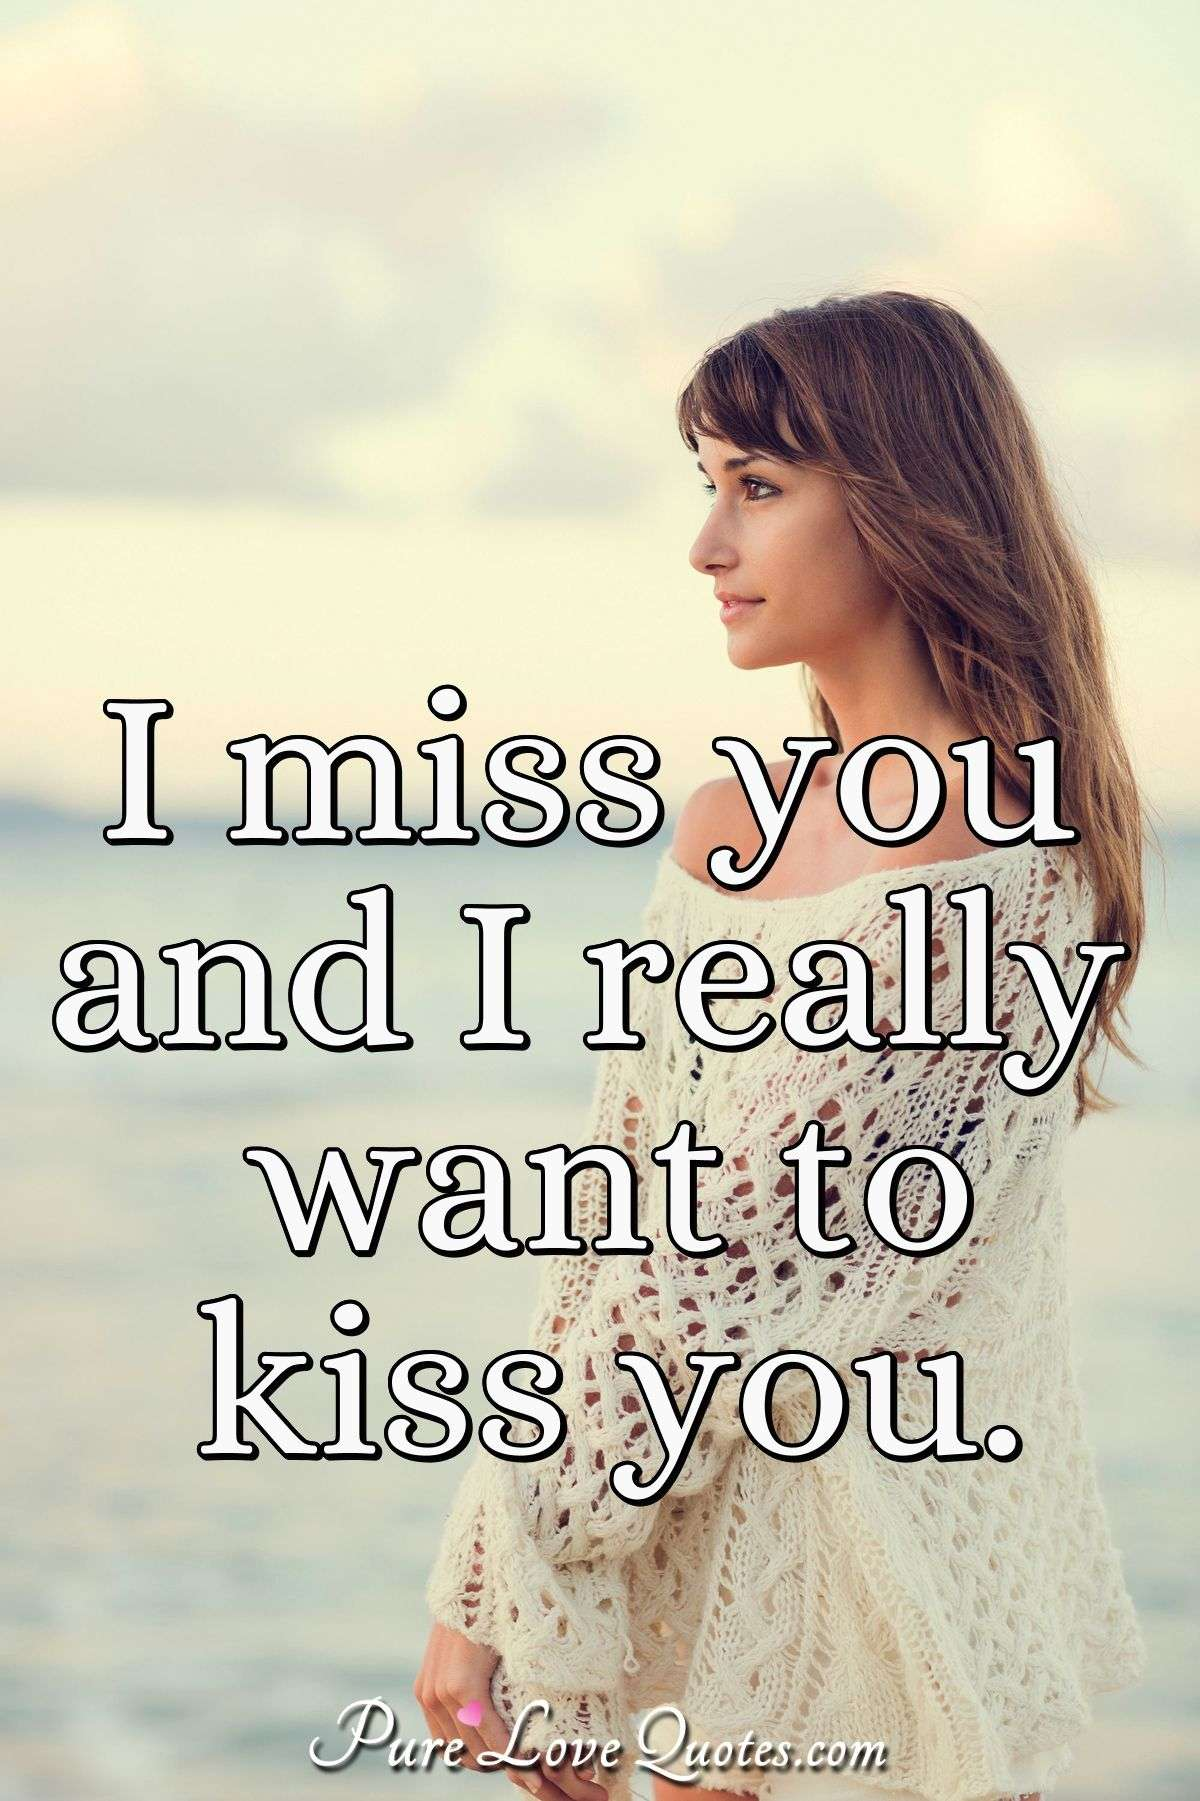 I miss you and I really want to kiss you. - Anonymous